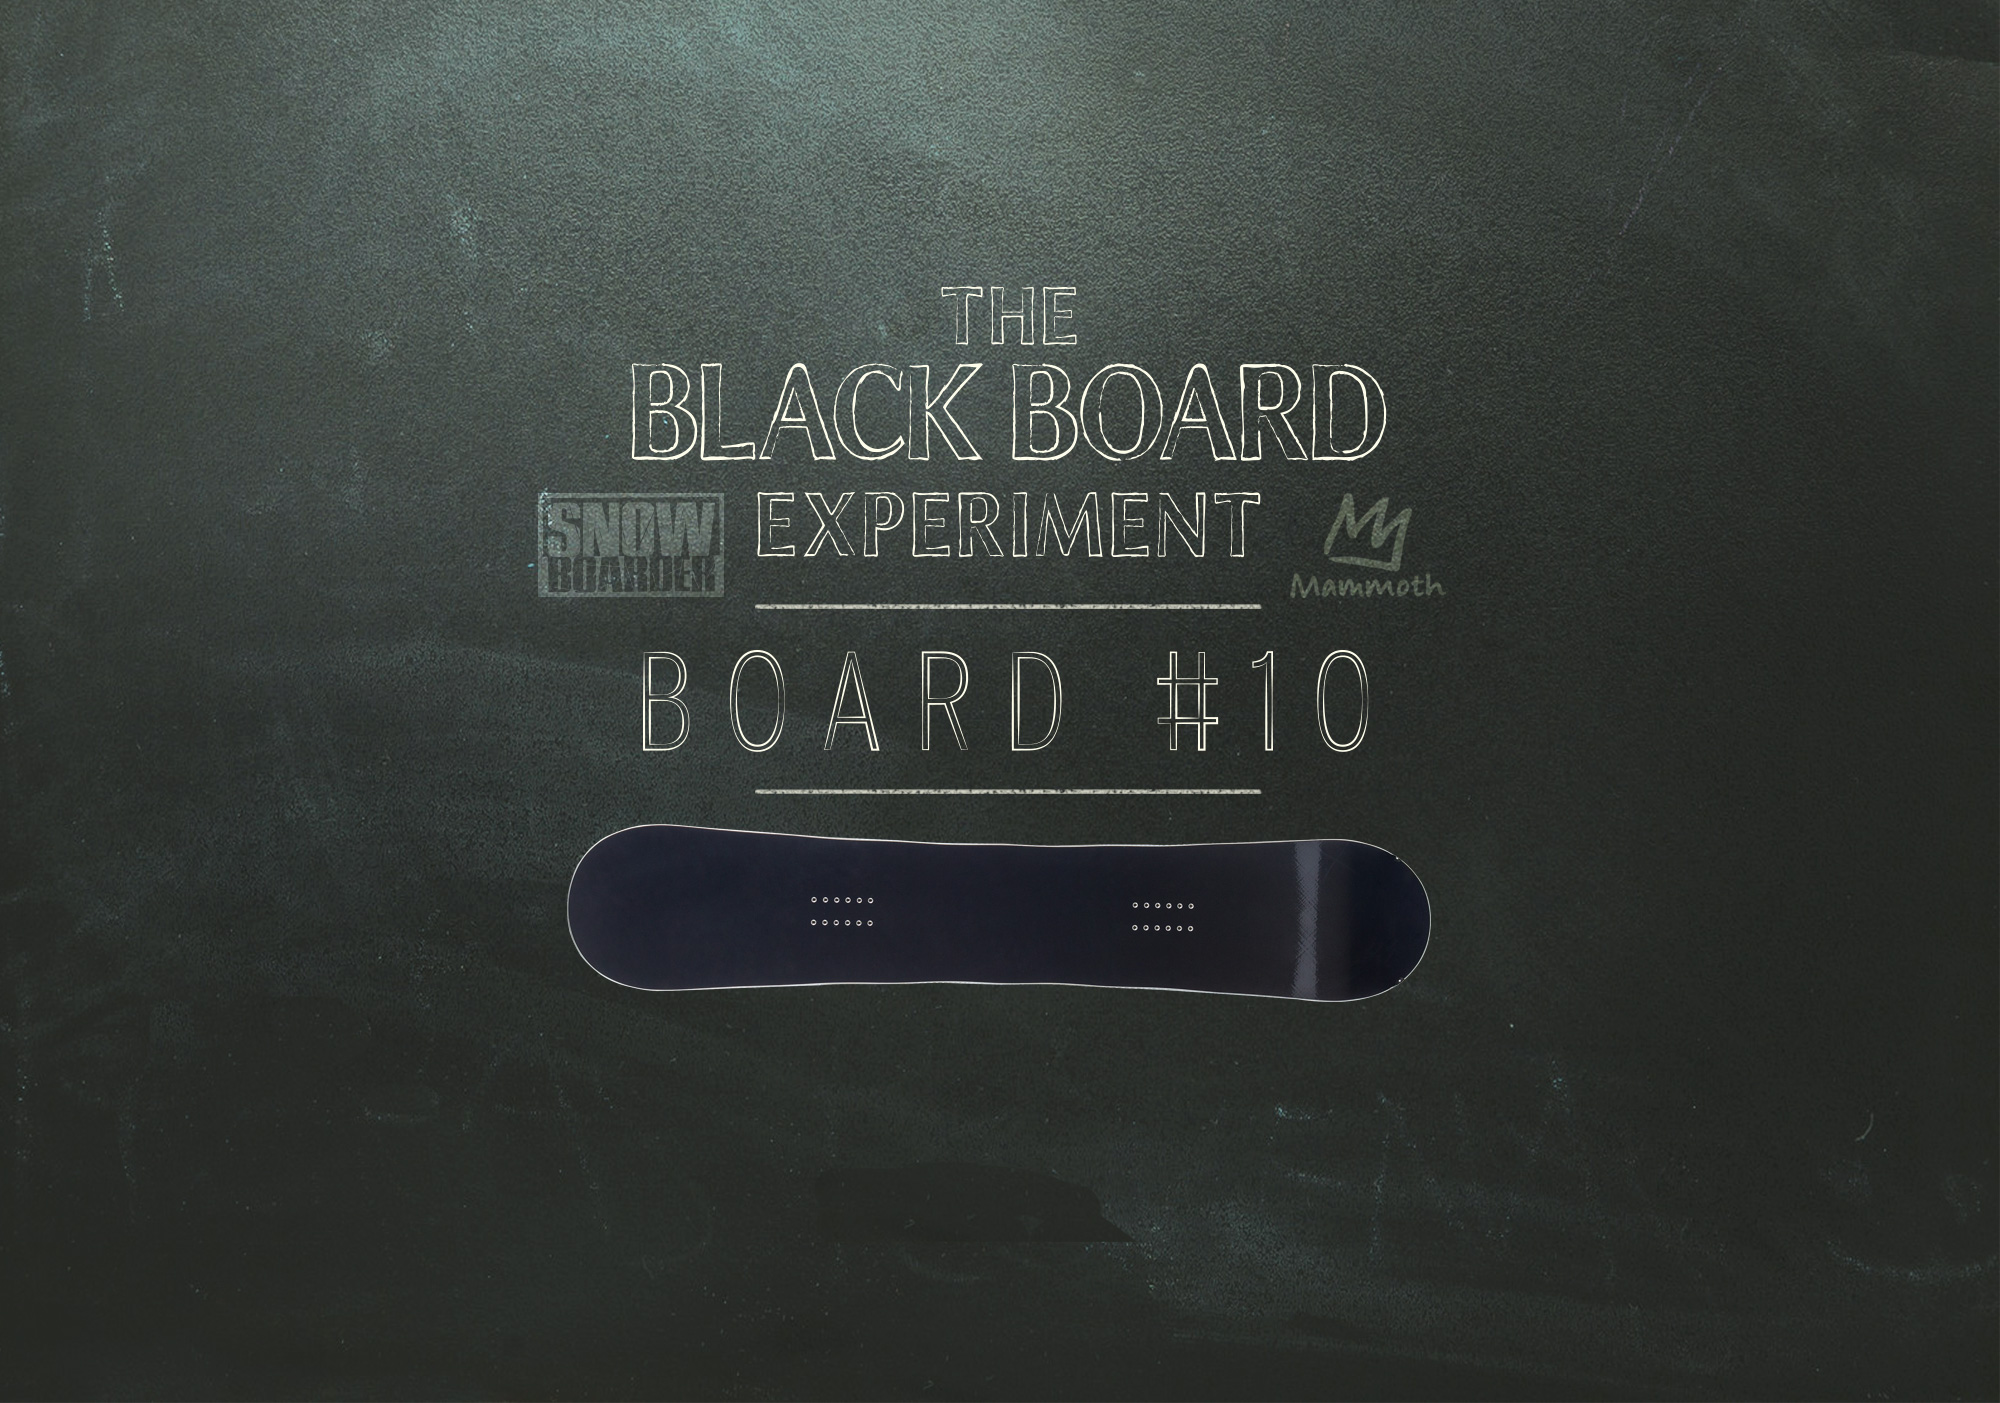 The Blackboard Experiment